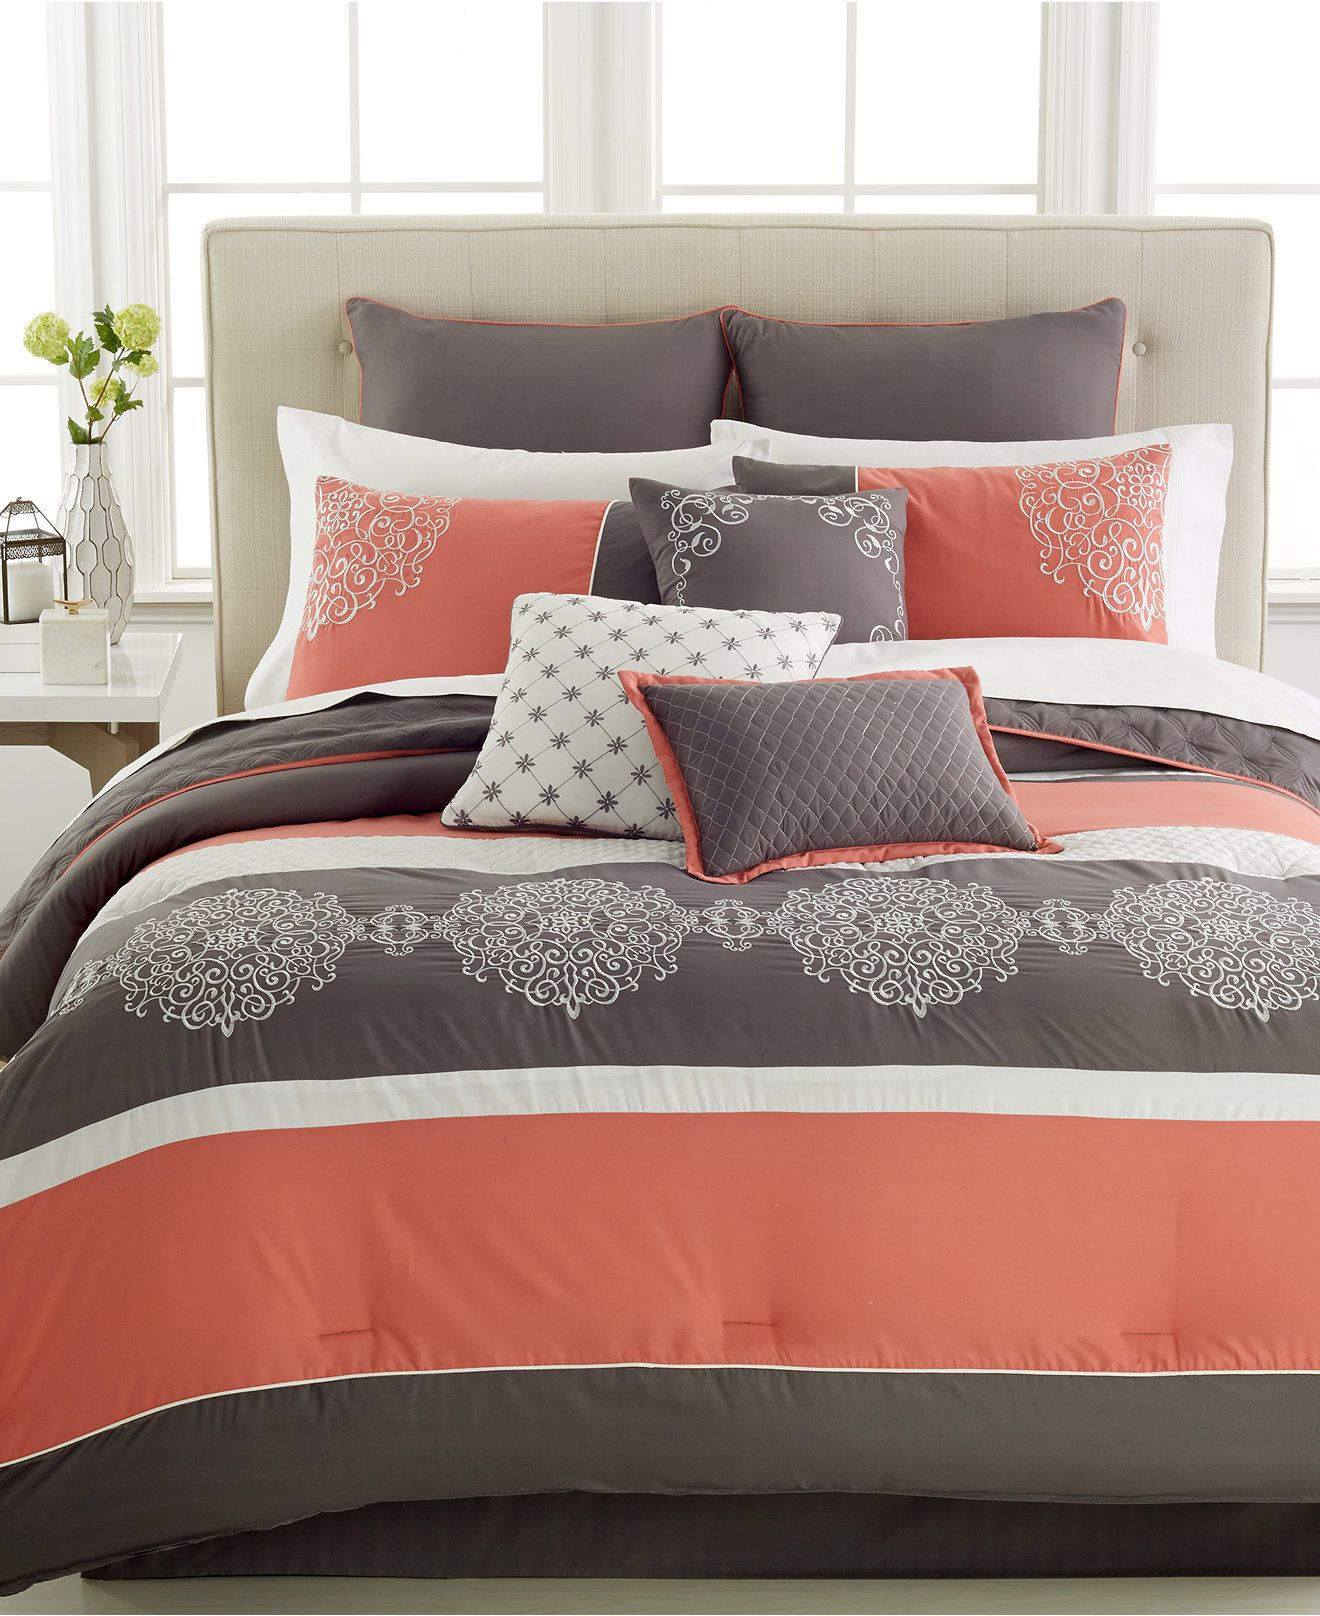 Closeout Parson 10 Pc Comforter Sets Reviews Bed In A Bag Bed Bath Macy S Coral And Grey Bedding Comforter Sets King Comforter Sets